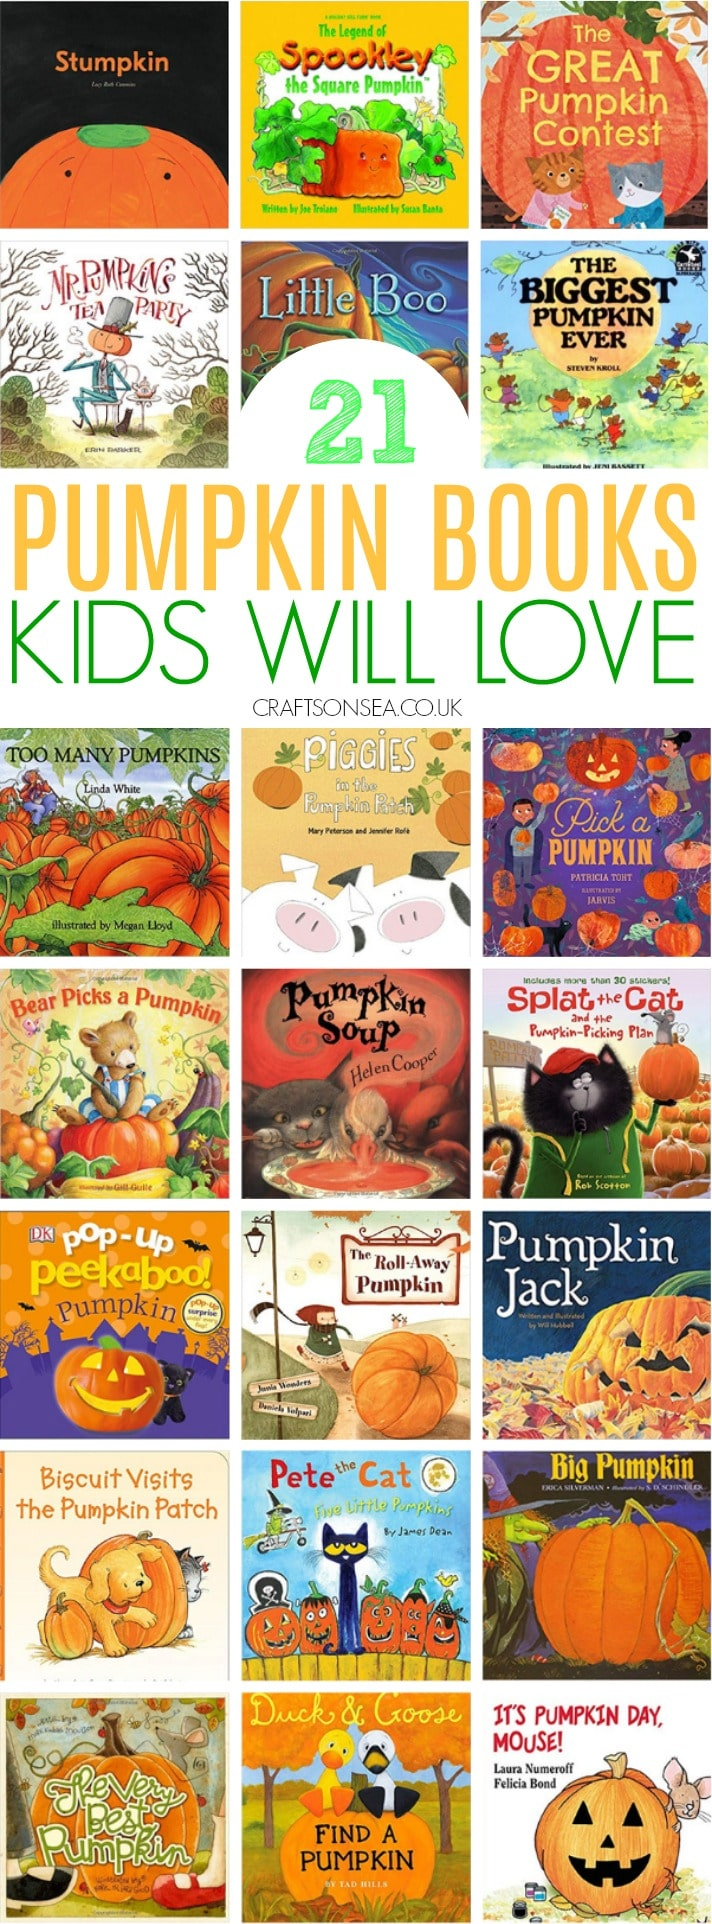 Pumpkin books for kids perfect for Halloween